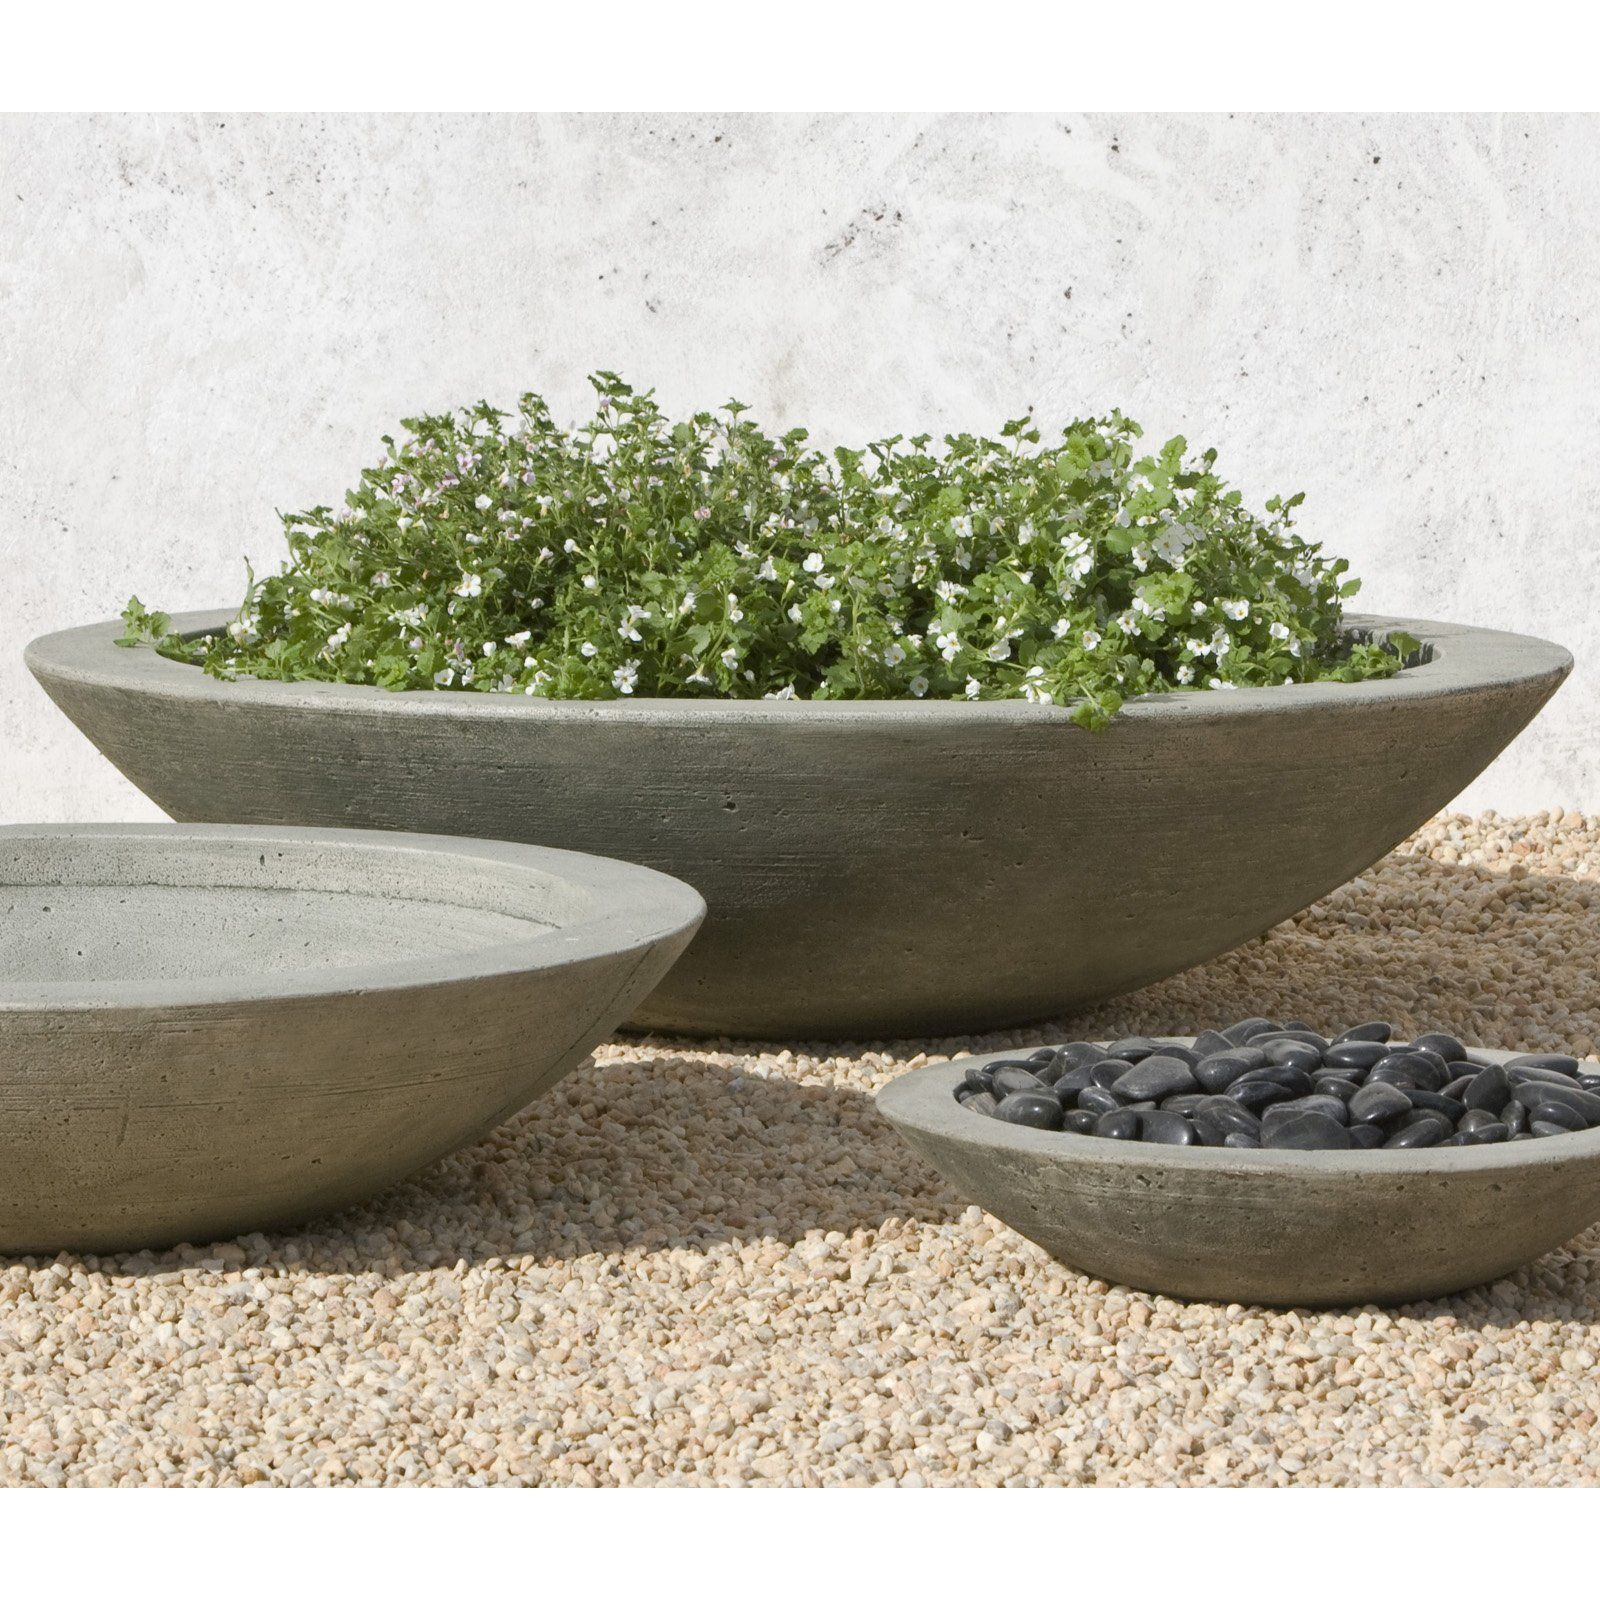 Campania International Small Low Zen Cast Stone Planting Bowl